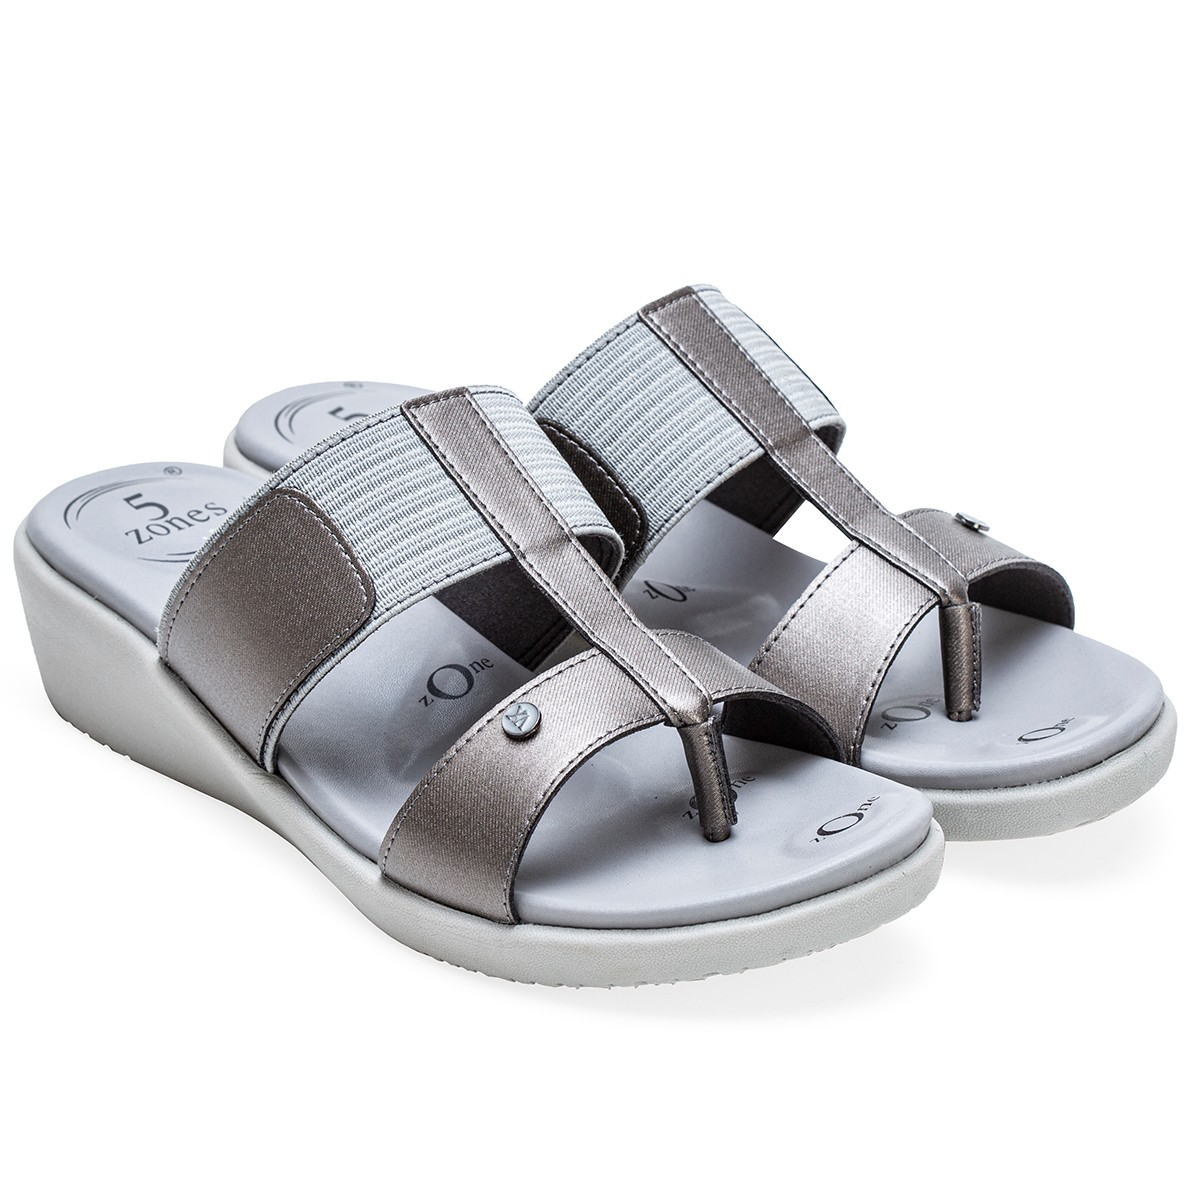 Buy VON WELLX GERMANY COMFORT GLAZE GUN METAL SLIPPERS In Delhi